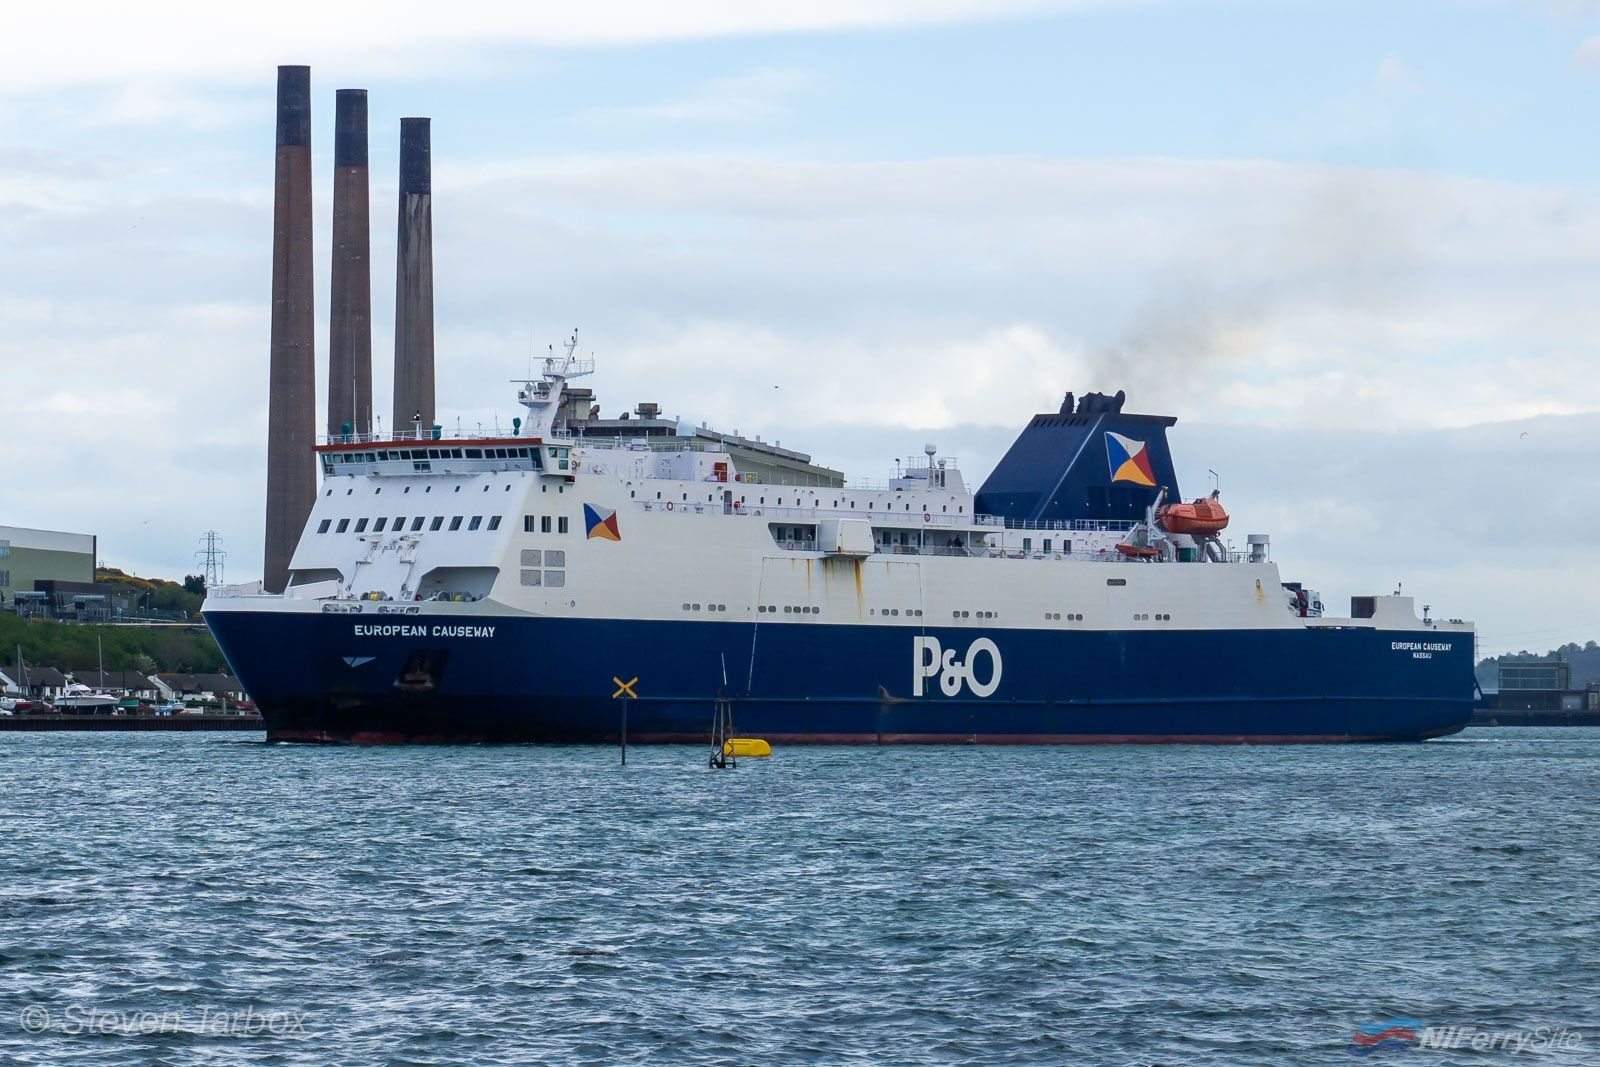 P&O Ferries EUROPEAN CAUSEWAY leaves Larne for Cairnryan on April 25th 2019. Copyright © Steven Tarbox.